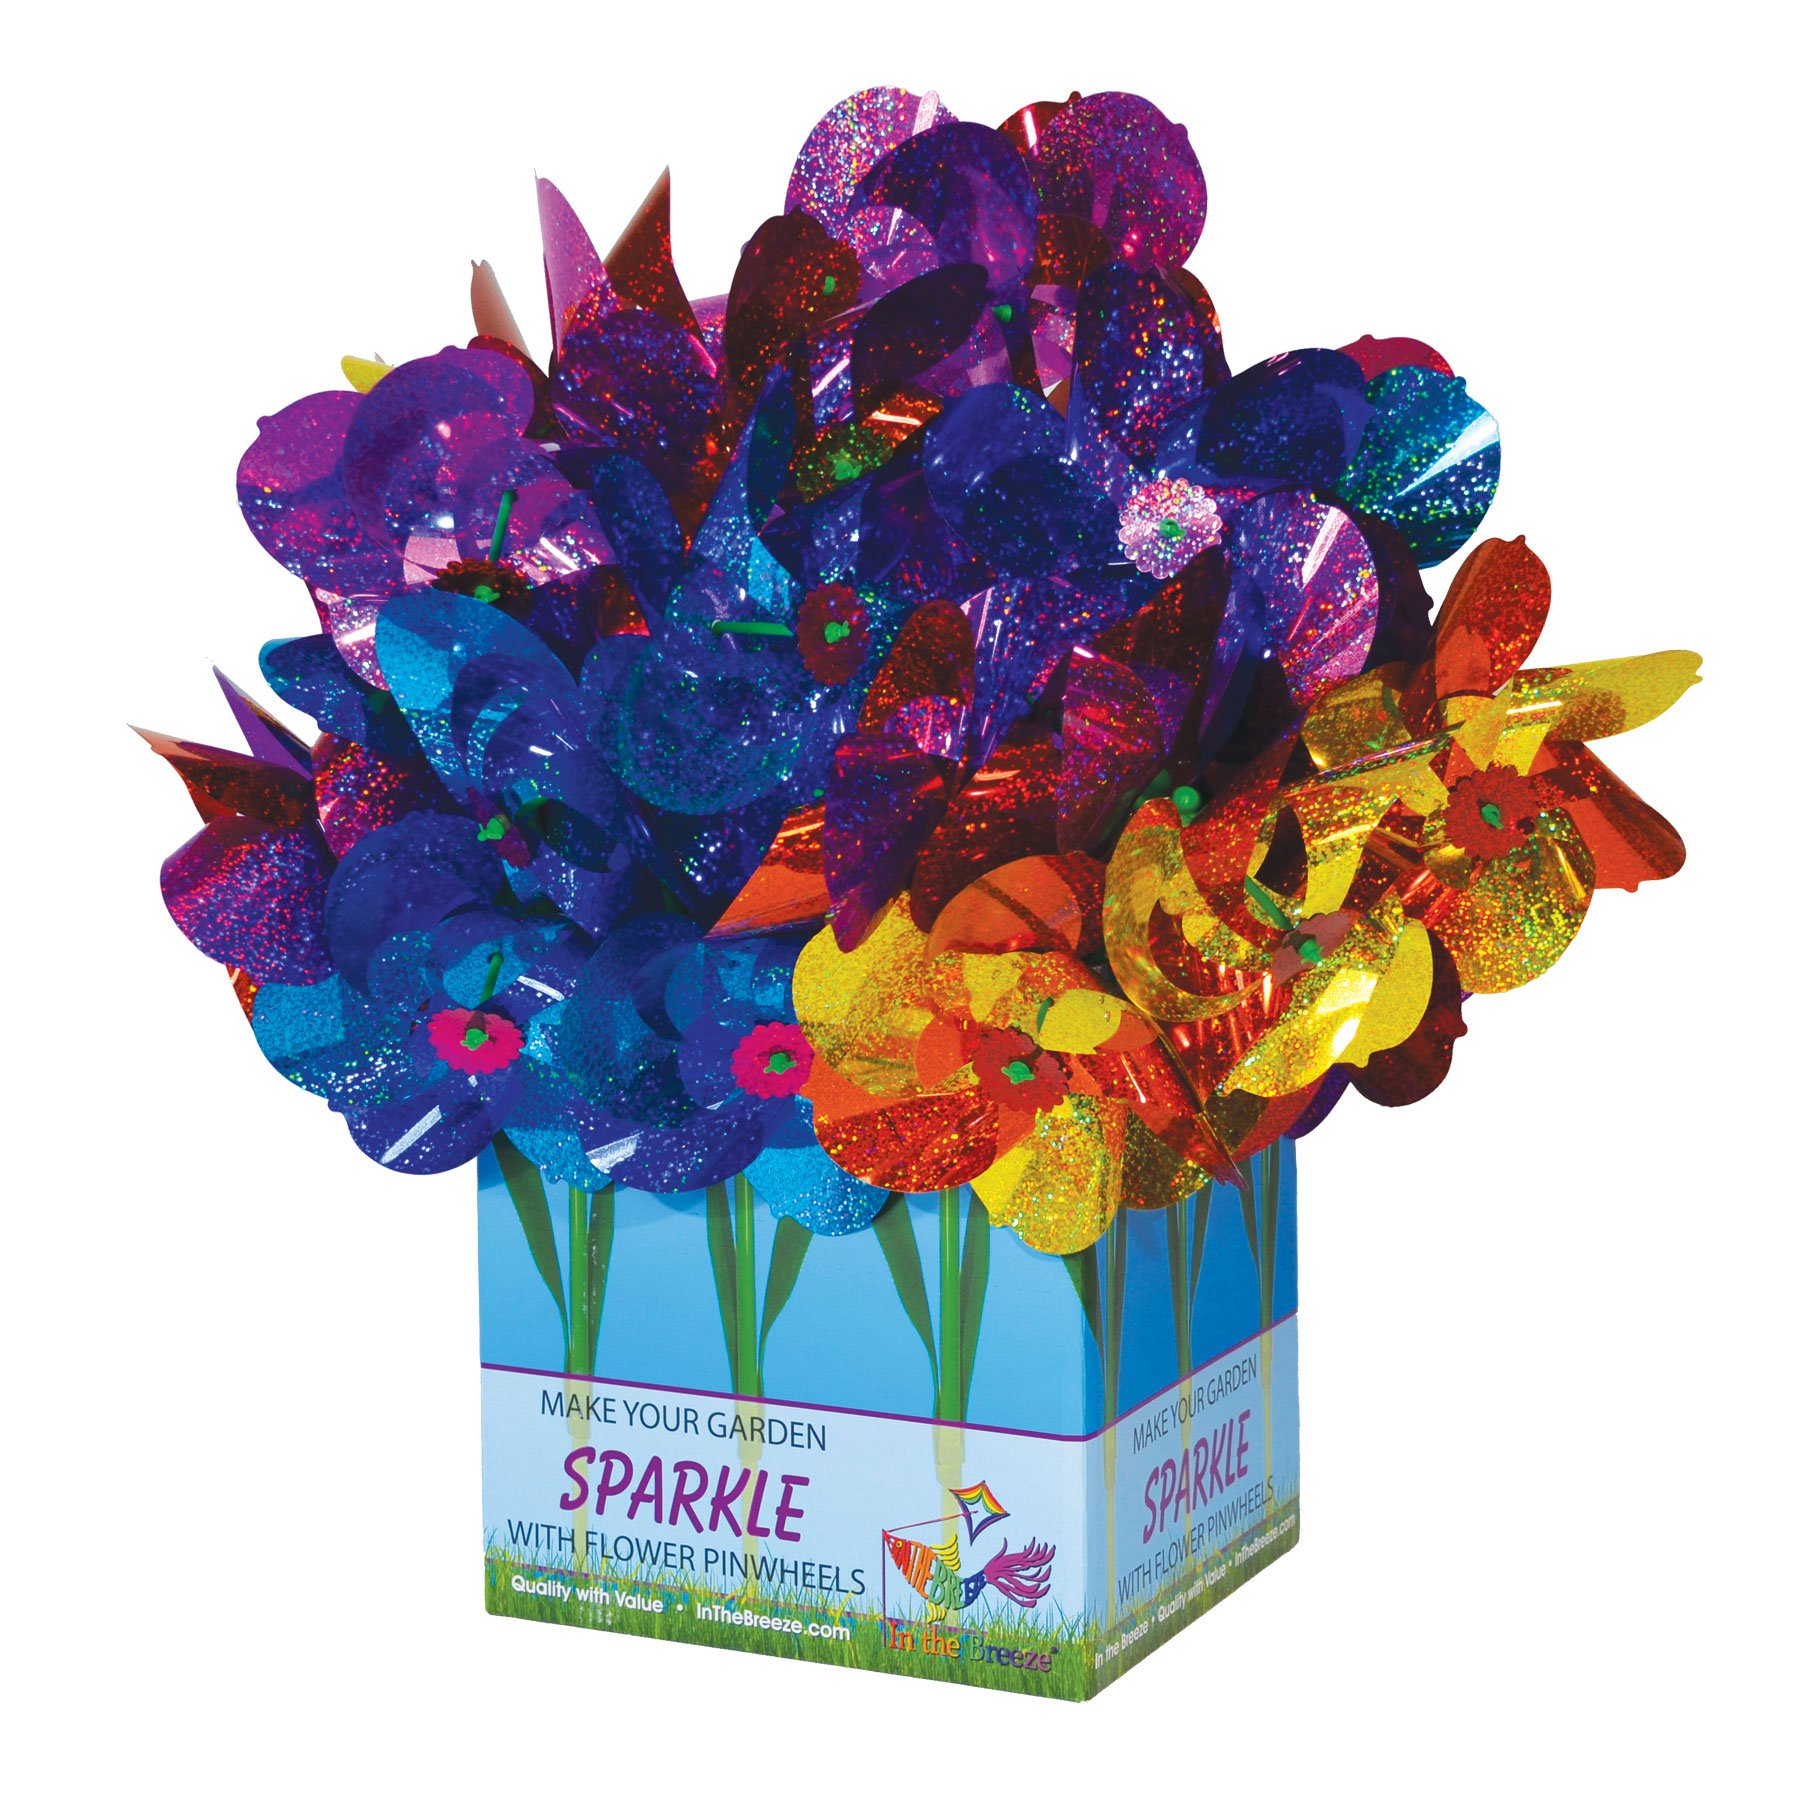 In the Breeze Mylar Rainbow Flower Pinwheel with Leaves - Assorted 2 Tone Color Spinners - 48 Pieces